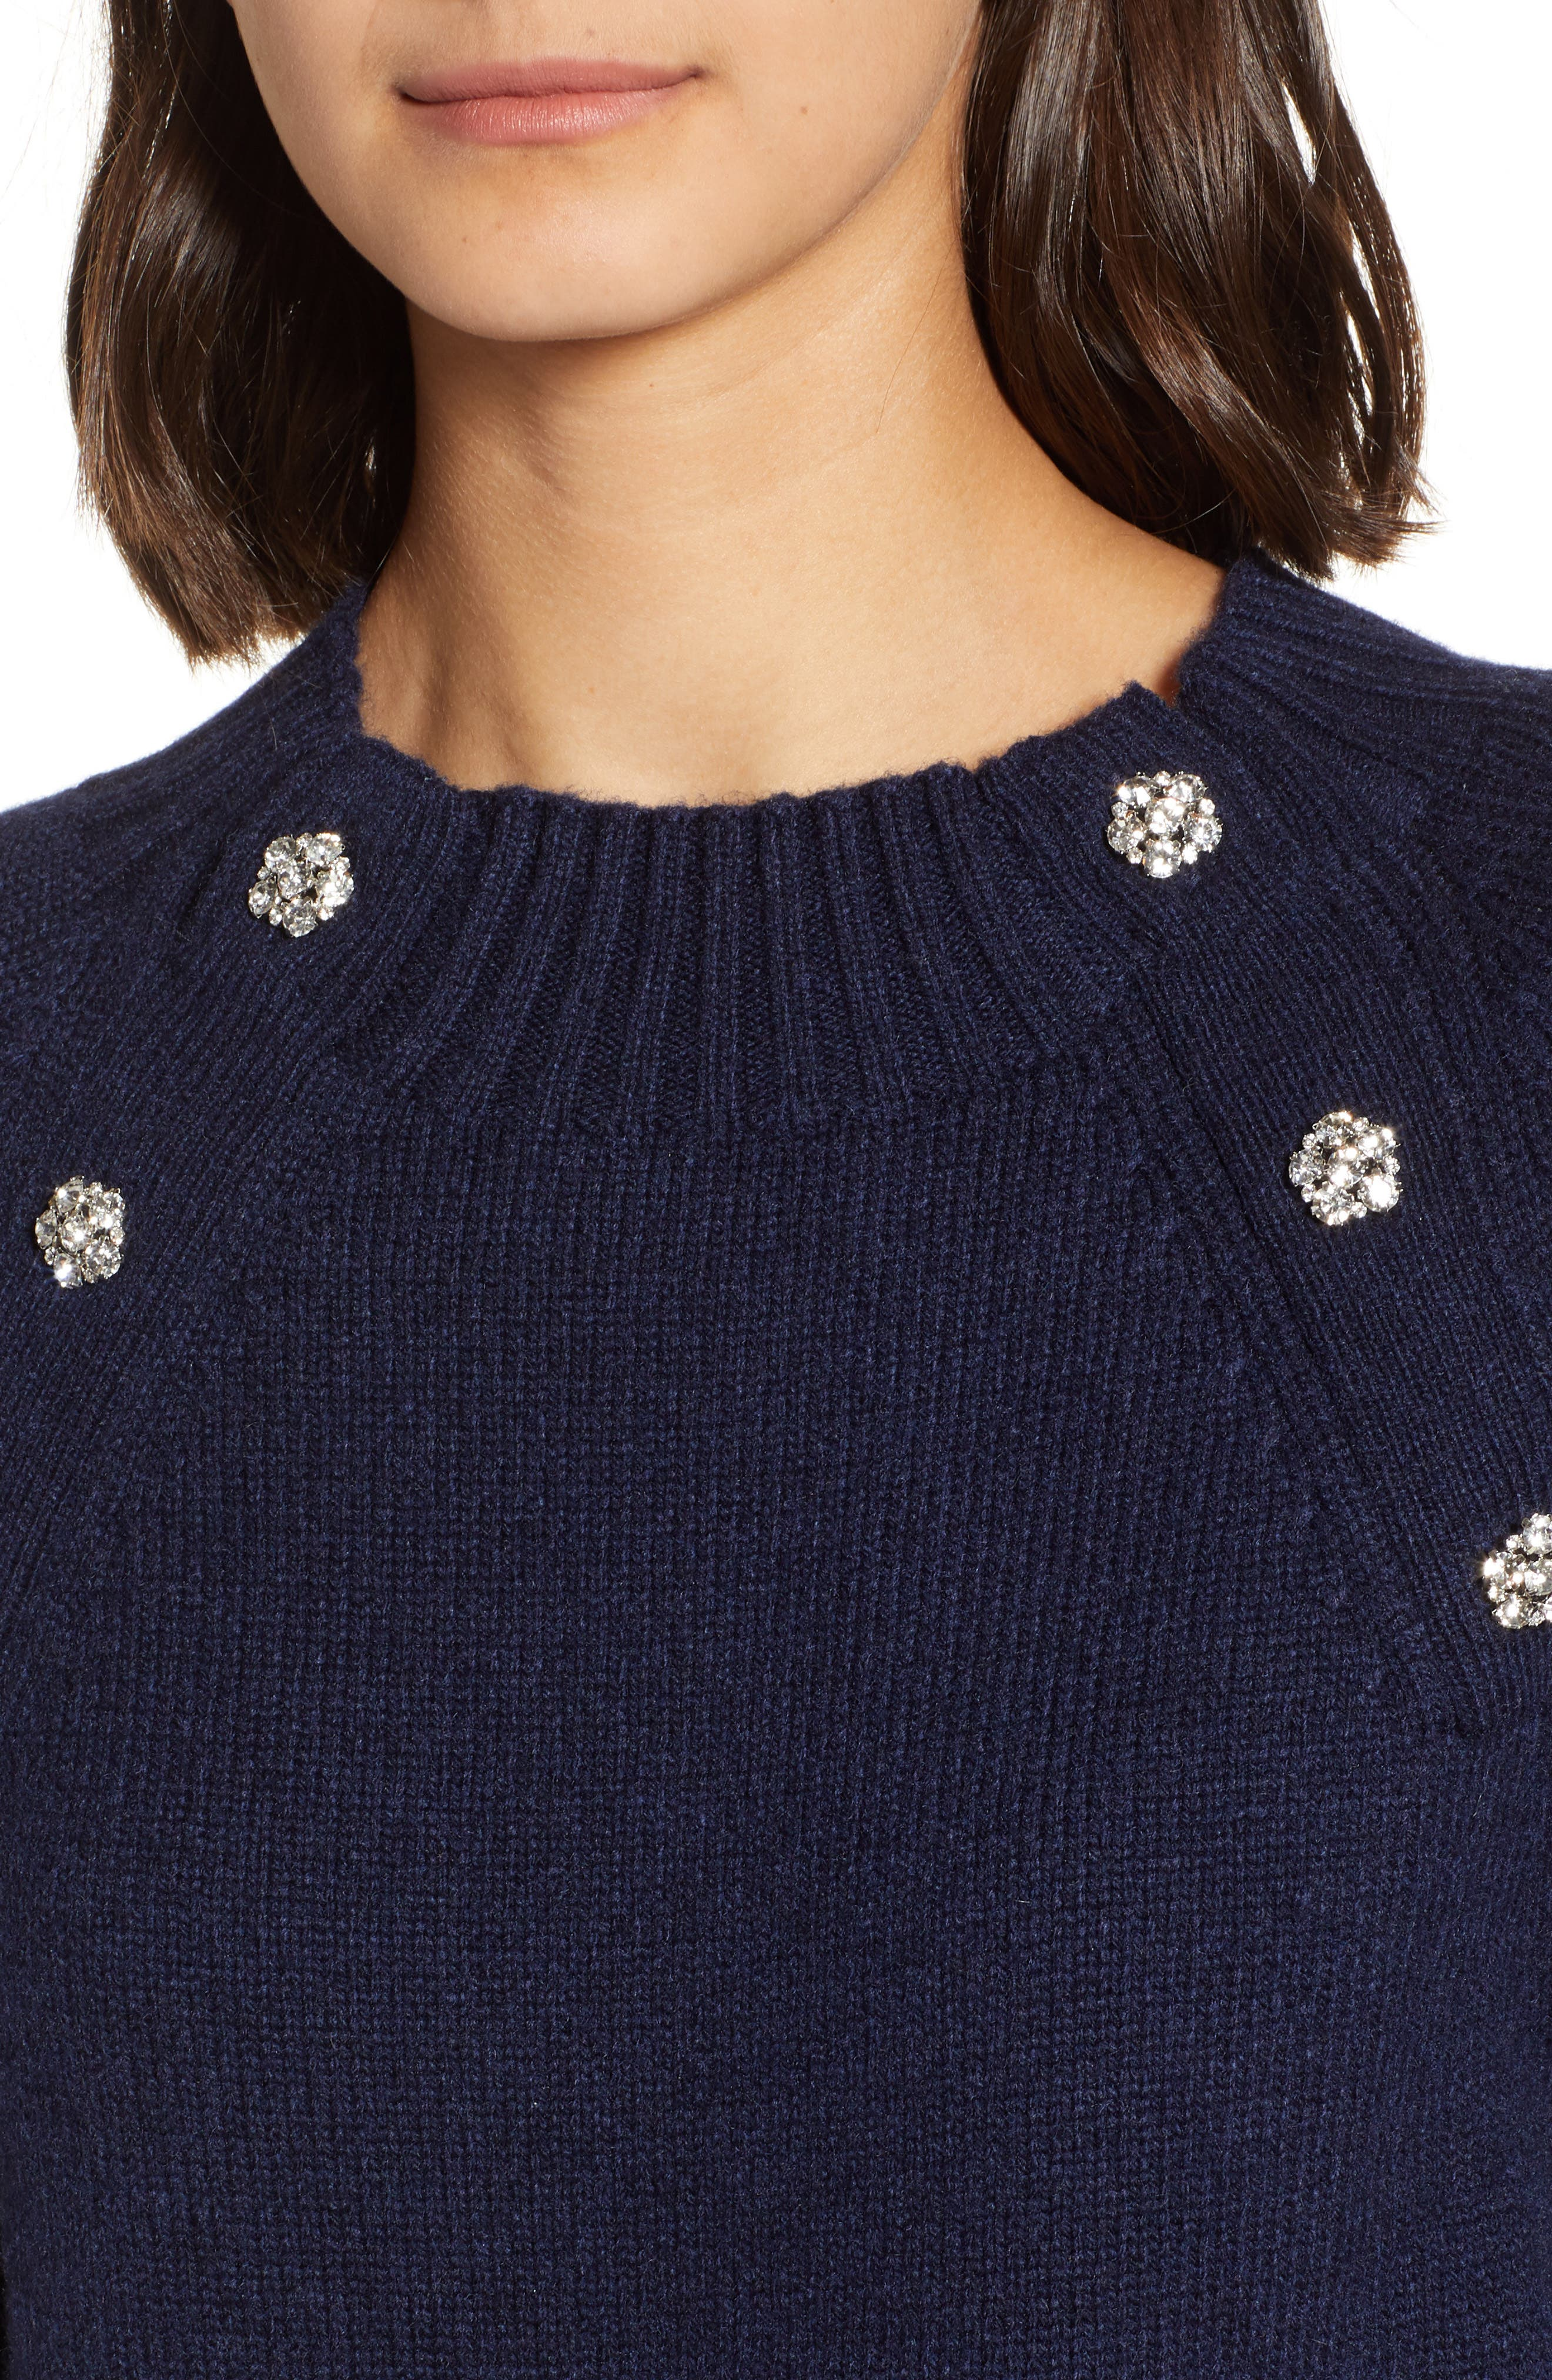 Sweater with Jeweled Buttons,                             Alternate thumbnail 4, color,                             NAVY